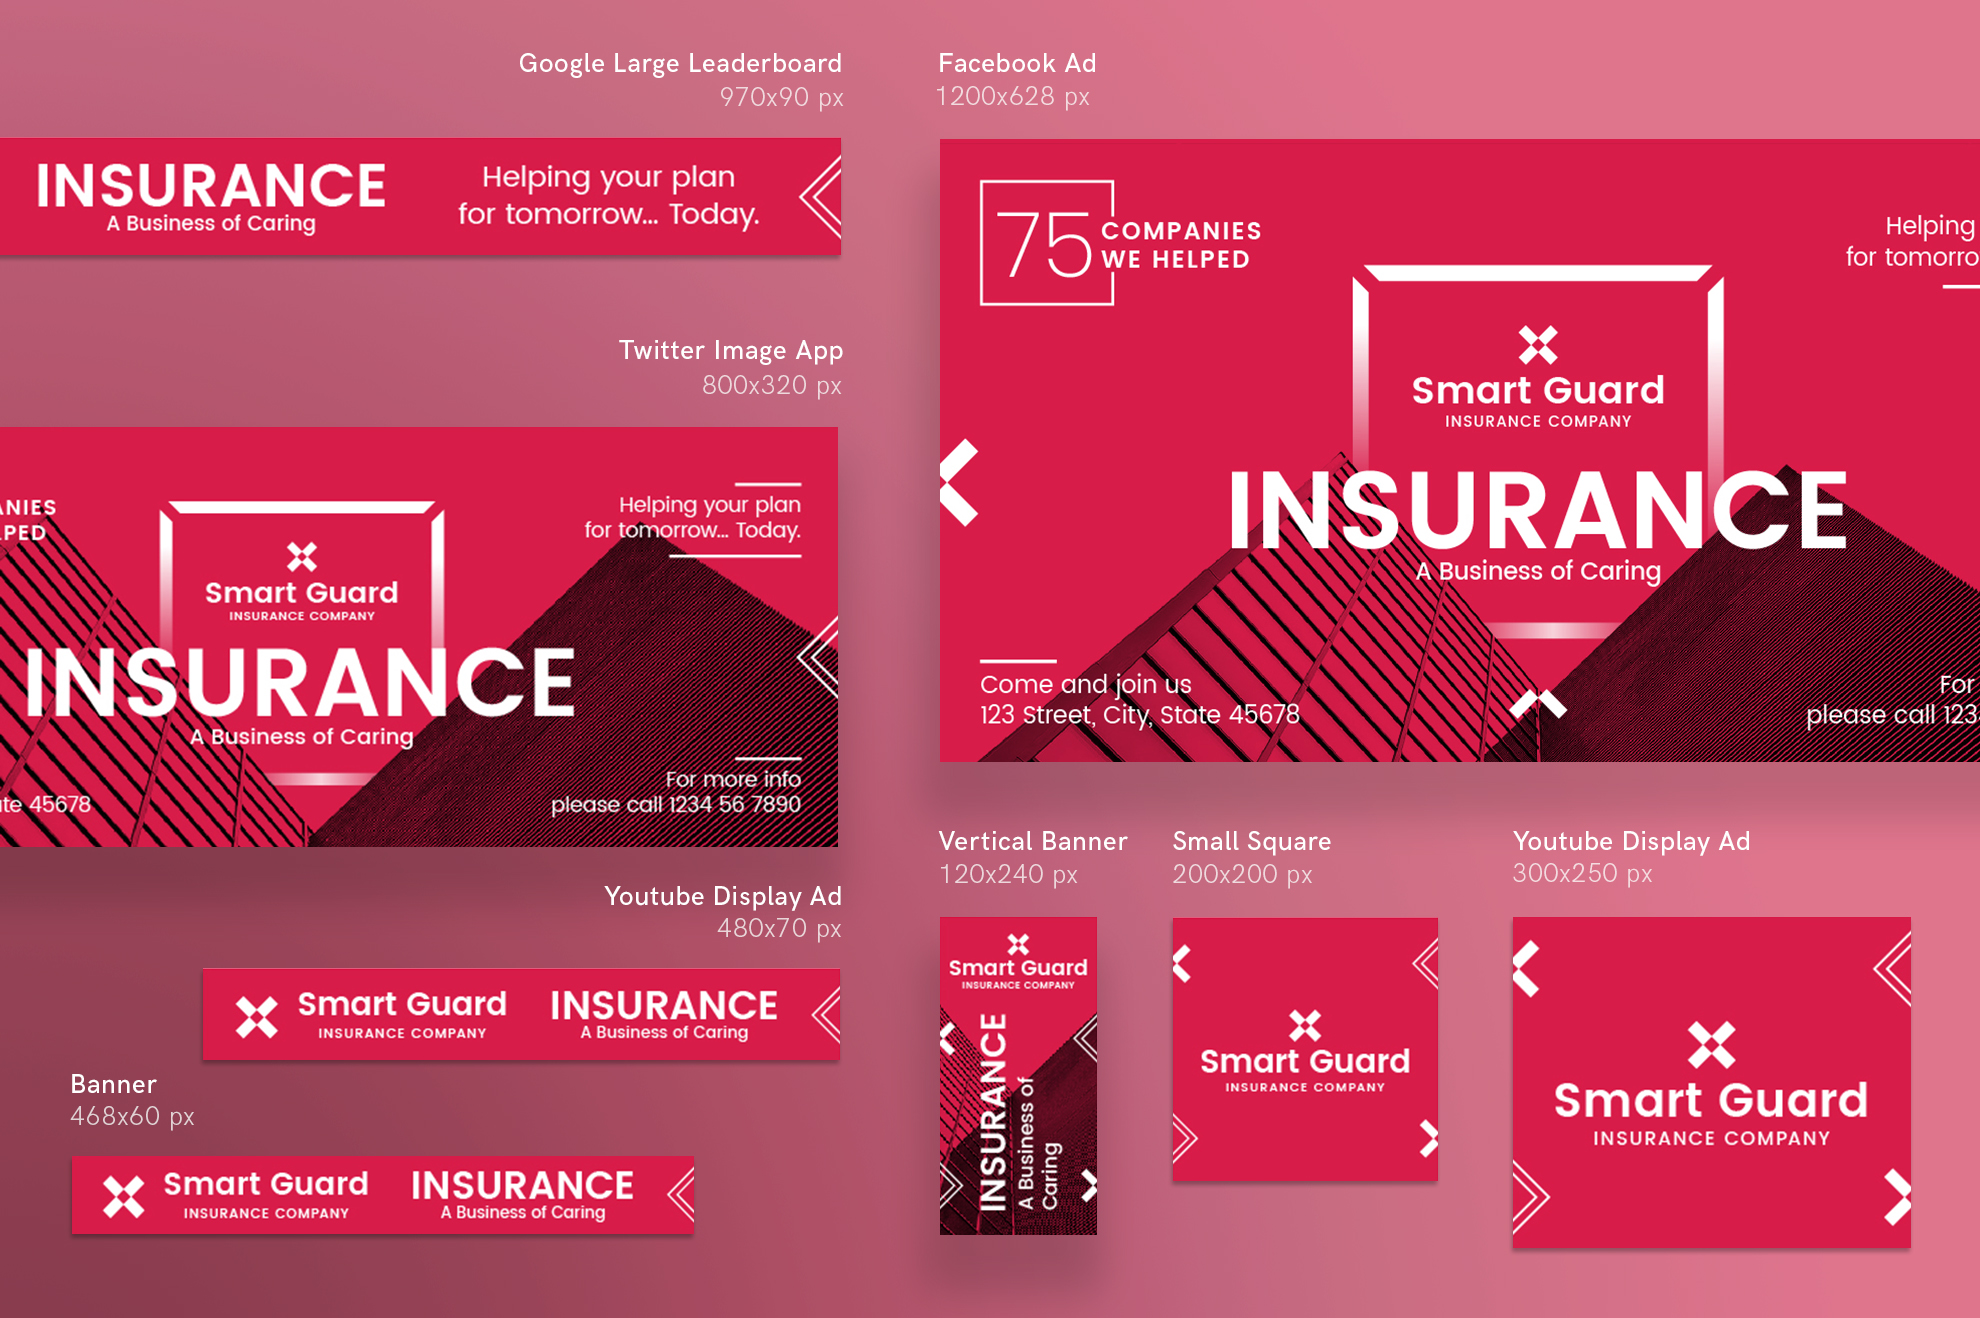 Insurance company design templates bund design bundles insurance company design templates bundle example image 12 altavistaventures